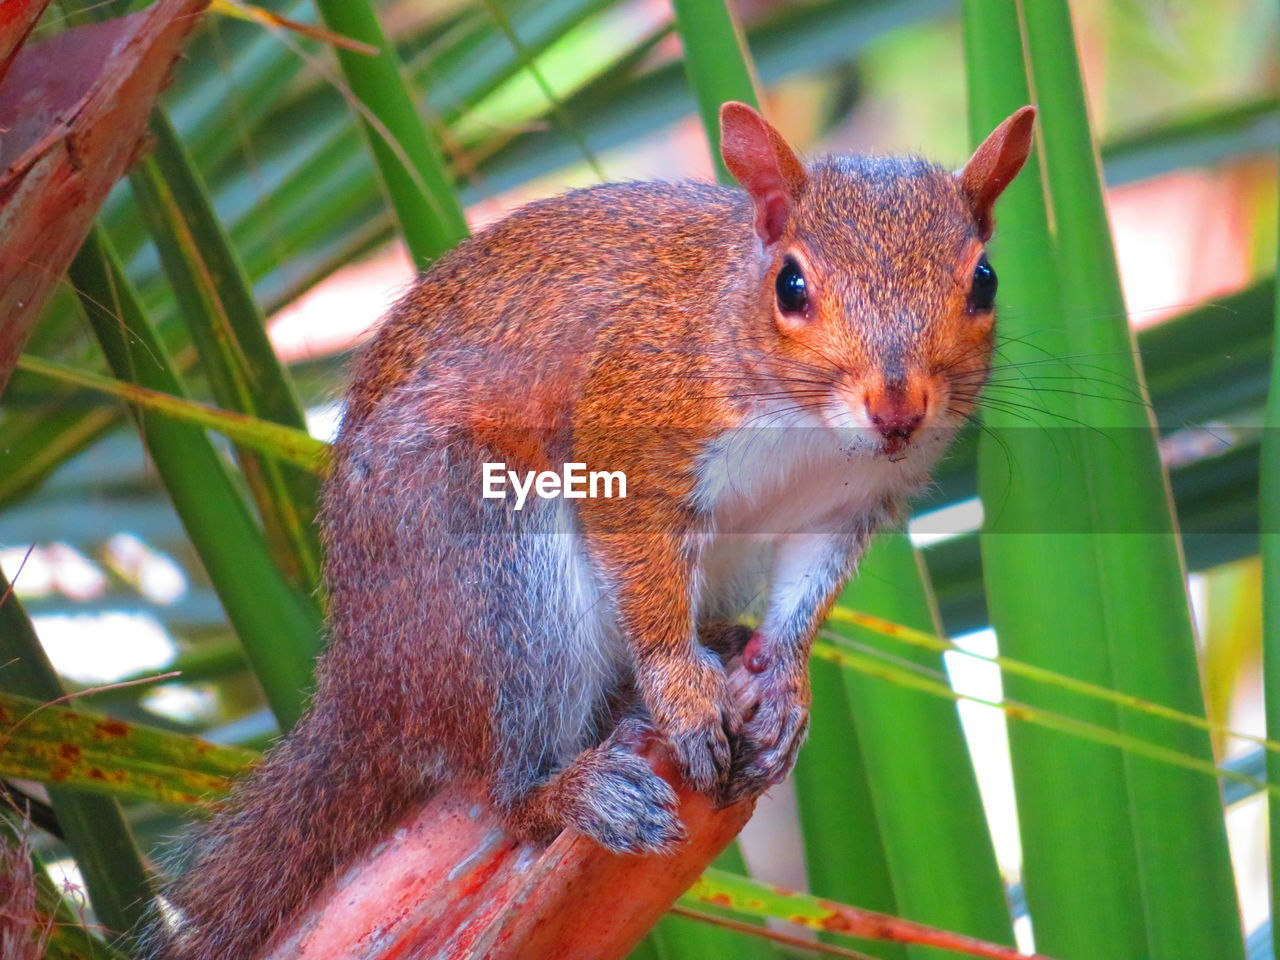 animal themes, one animal, animal, animal wildlife, mammal, rodent, animals in the wild, squirrel, close-up, vertebrate, no people, focus on foreground, day, green color, plant, nature, plant part, leaf, outdoors, brown, animal head, whisker